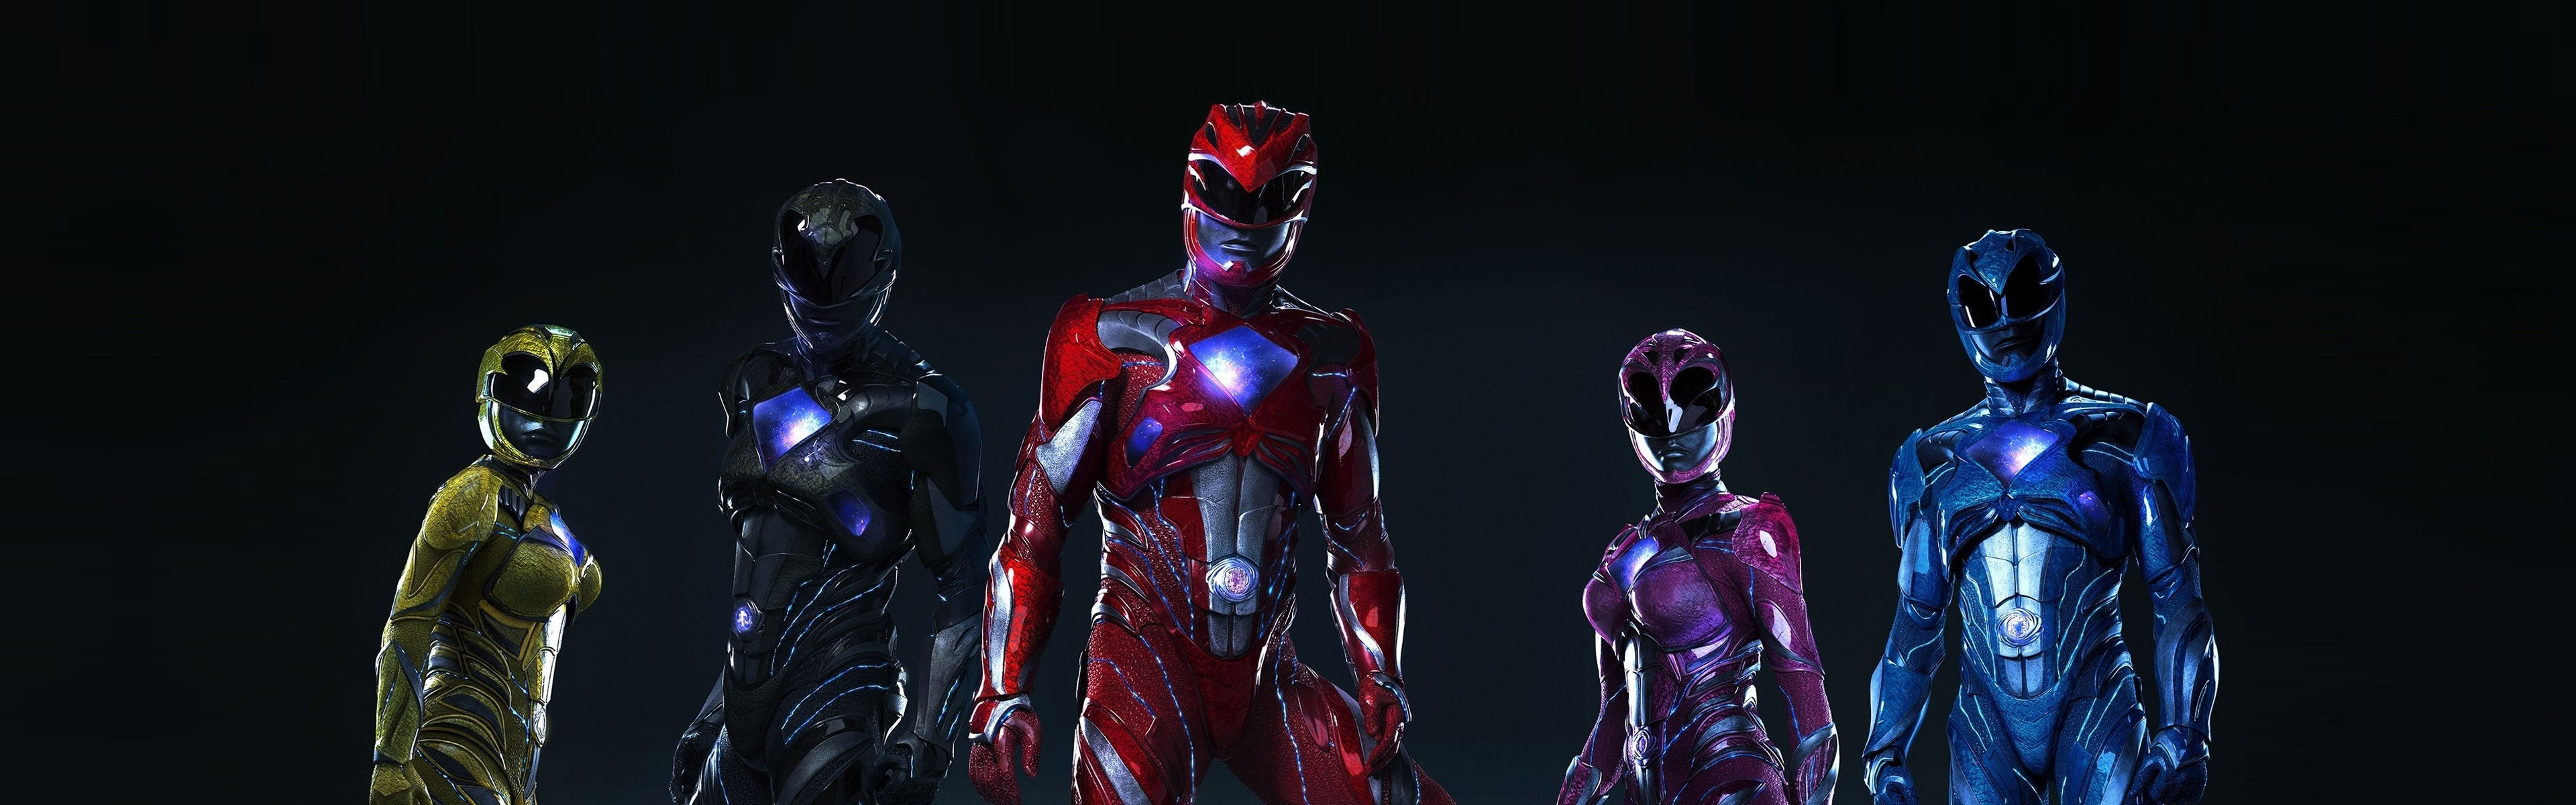 Res: 3840x1200, Power Rangers (2017) Wallpapers 19 - 3840 X 1200